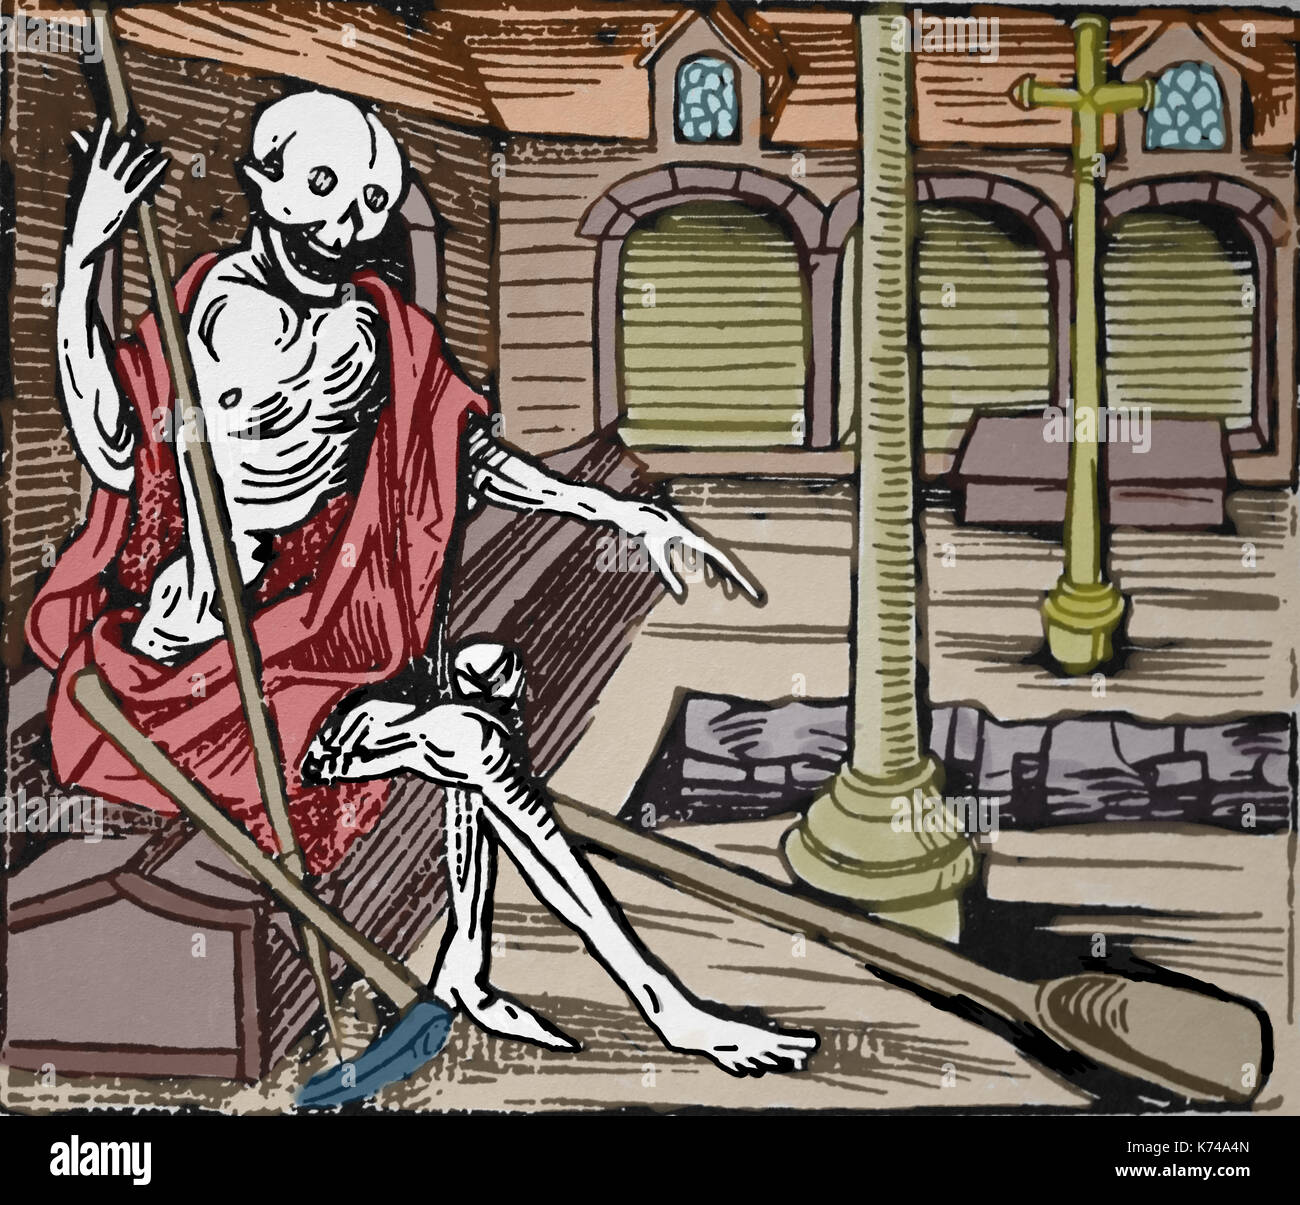 Memento mori. Death in the cloister. From Robert Gobi, The ravishing Wolves. 16th century. - Stock Image